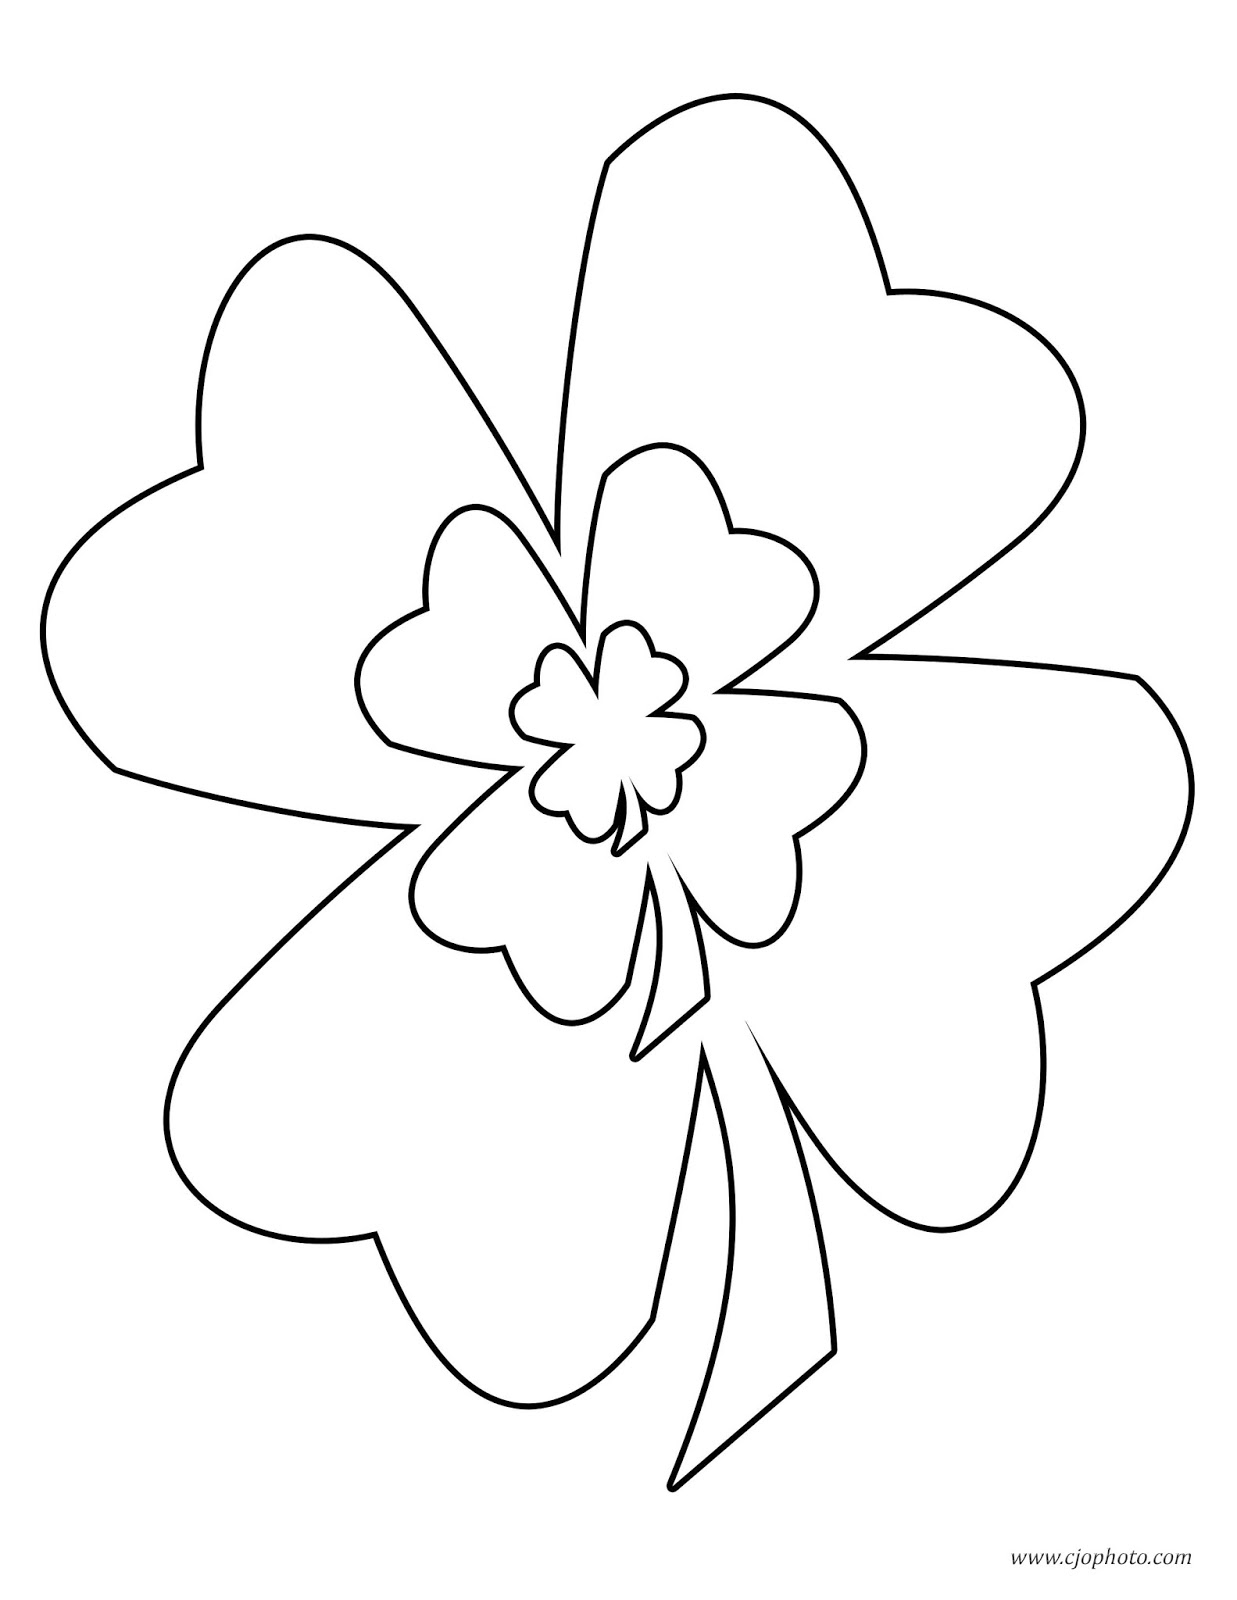 CJO Photo: St. Patrick\'s Day Coloring Page: Three Shamrocks